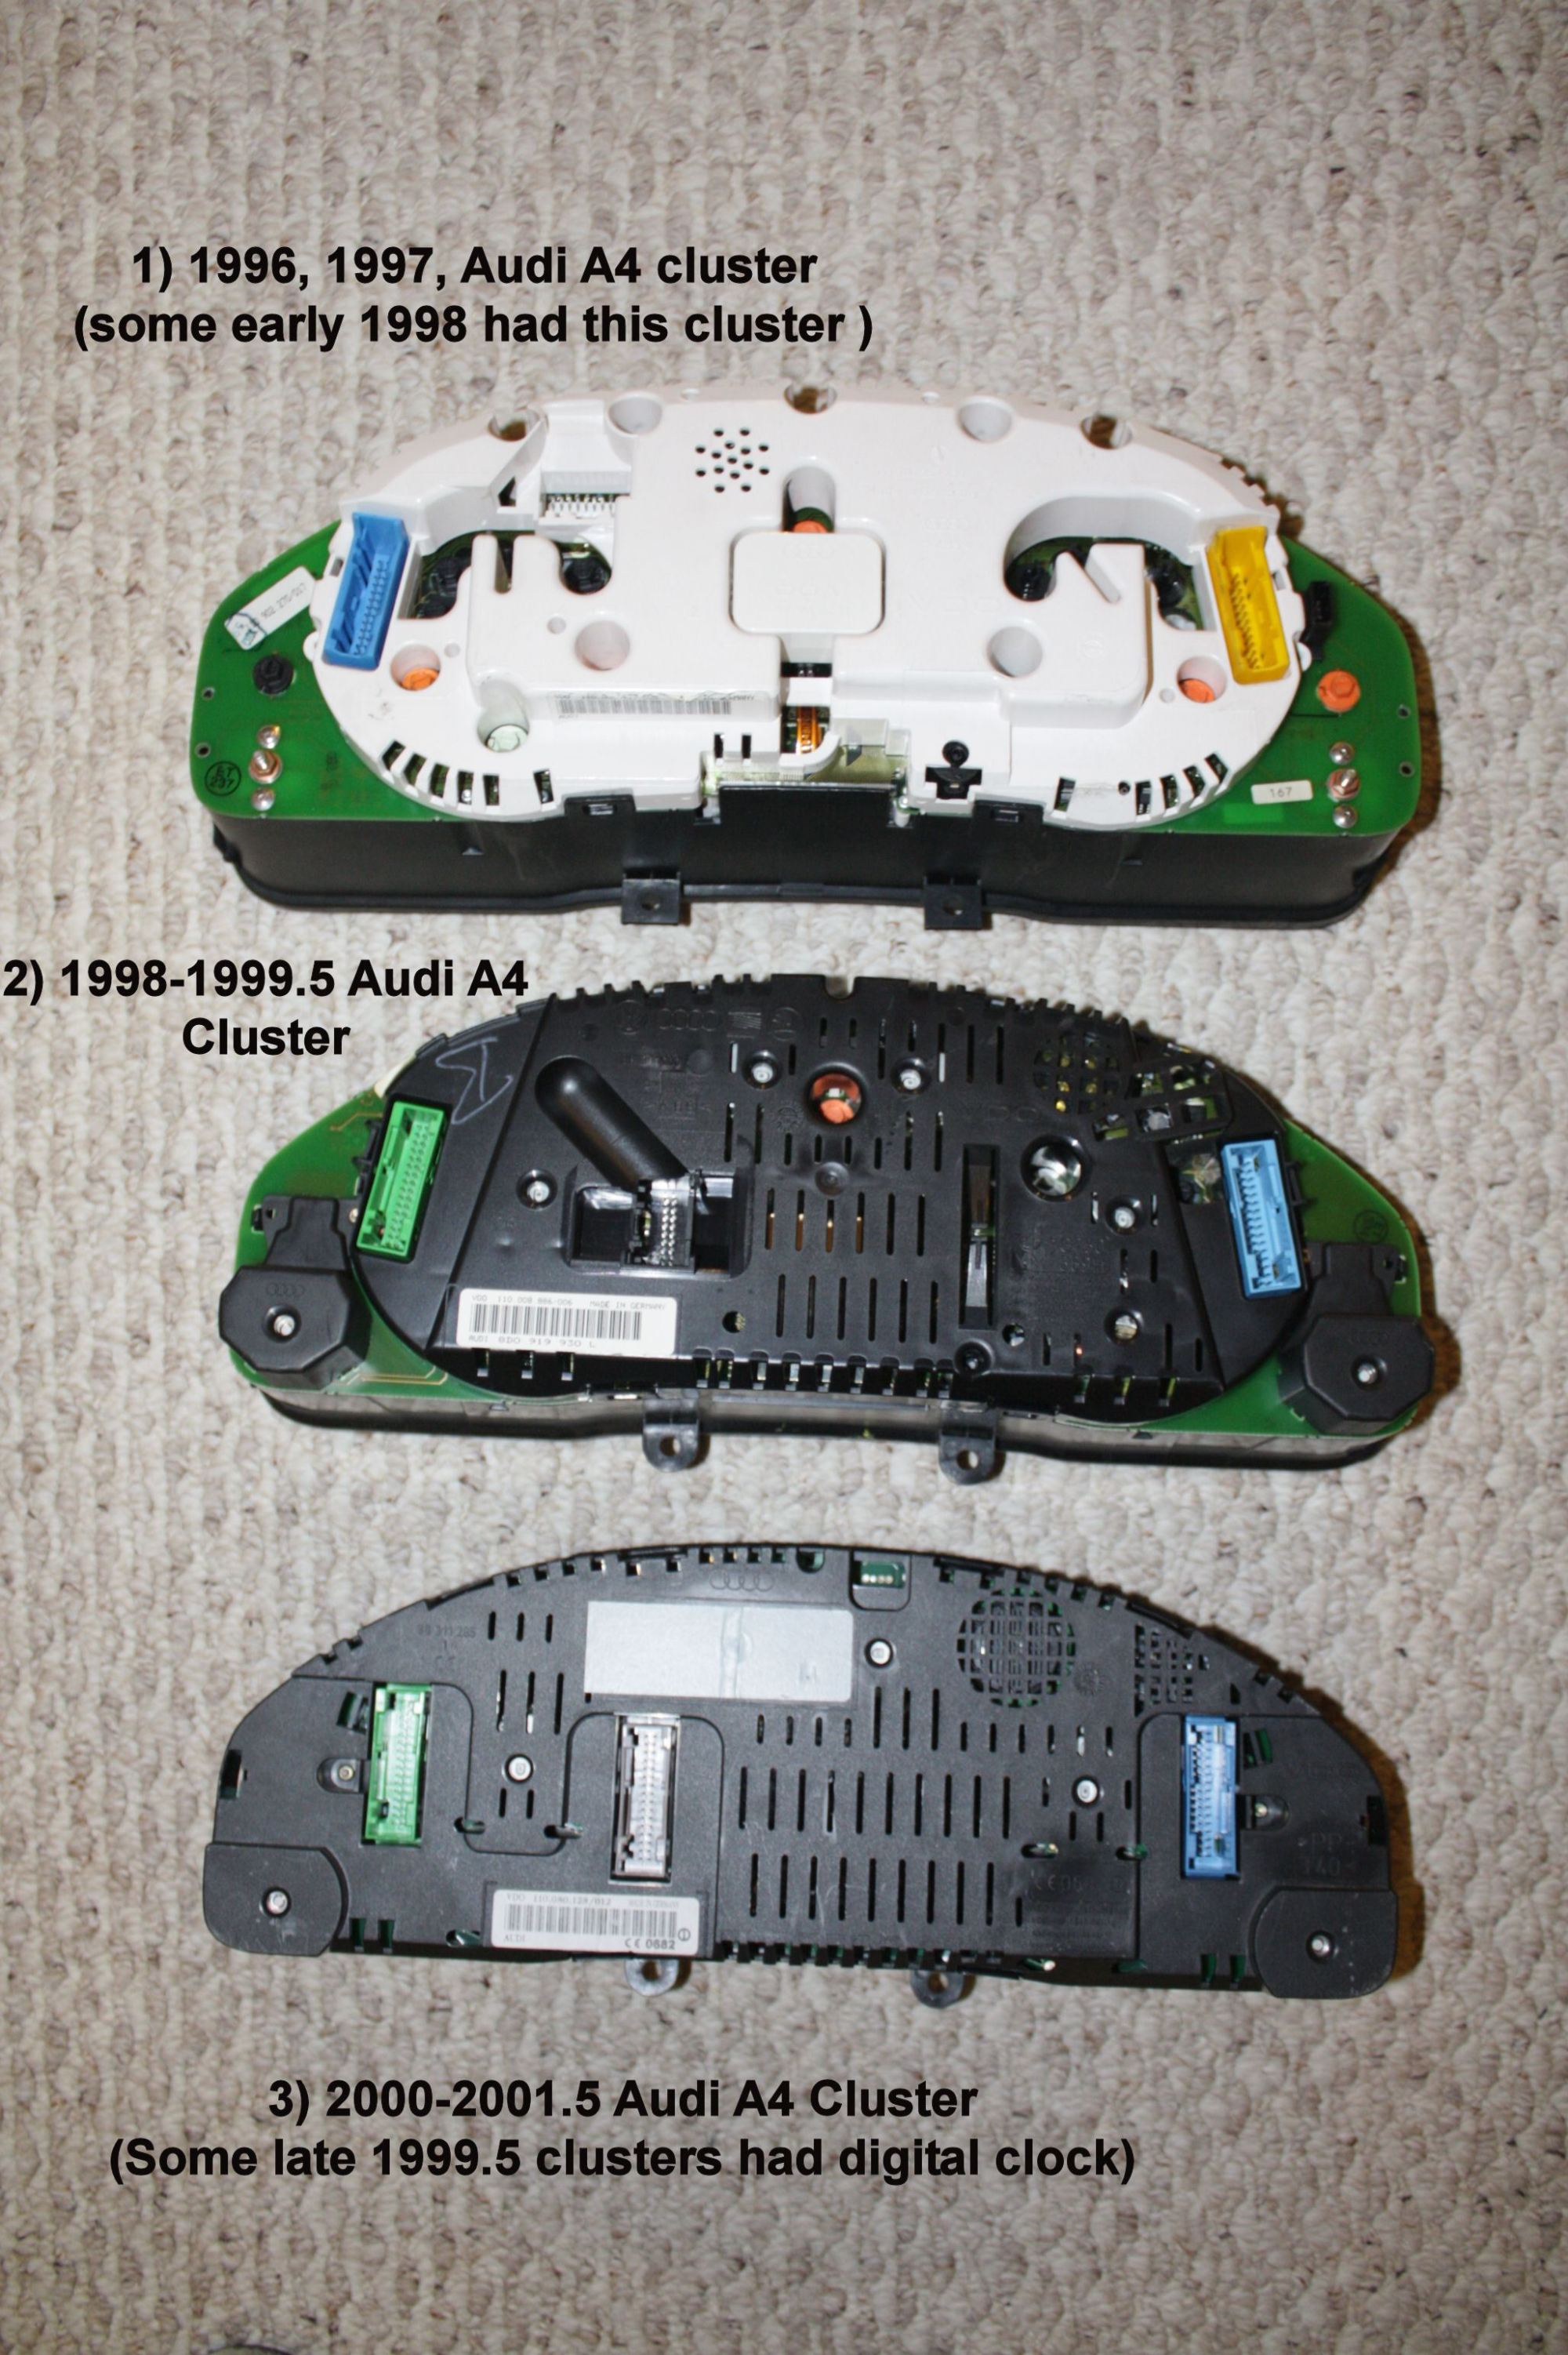 hight resolution of understanding differences between audi a4 clusters and the compatibility issues